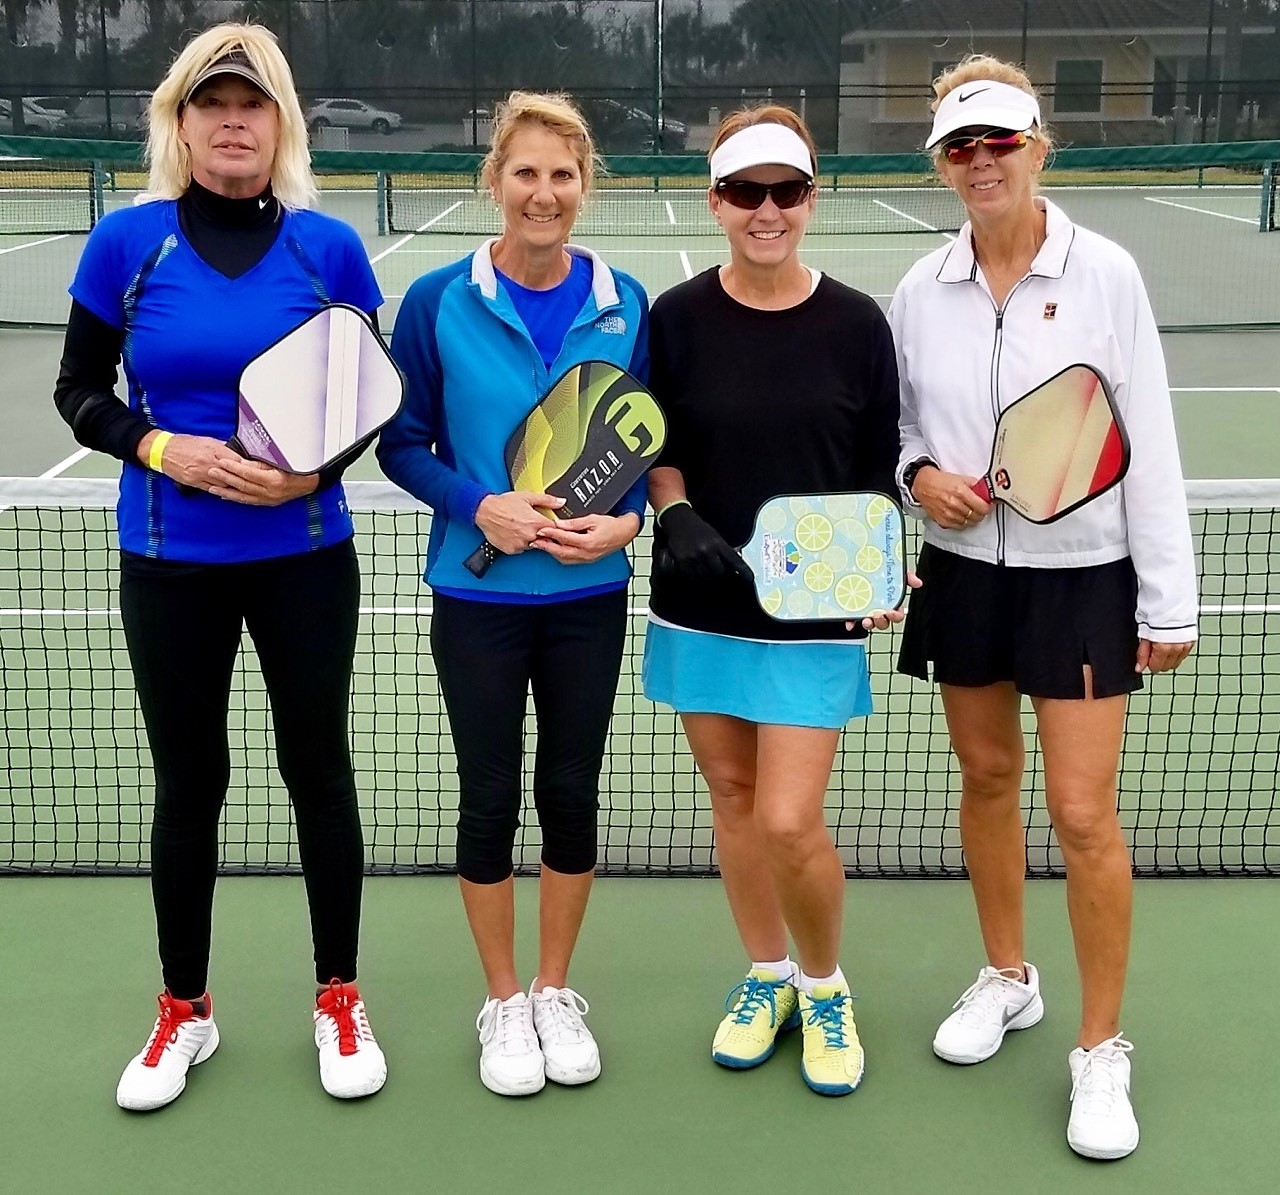 Go Mary Go! - Mary Kozlowski wins Silver at the 4.0 Tournament in The Villages this week, January 13, 2019. Mary is amazing. She started playing with our paddle 3 years ago and hasn't stopped. We love The Villages and Mary.